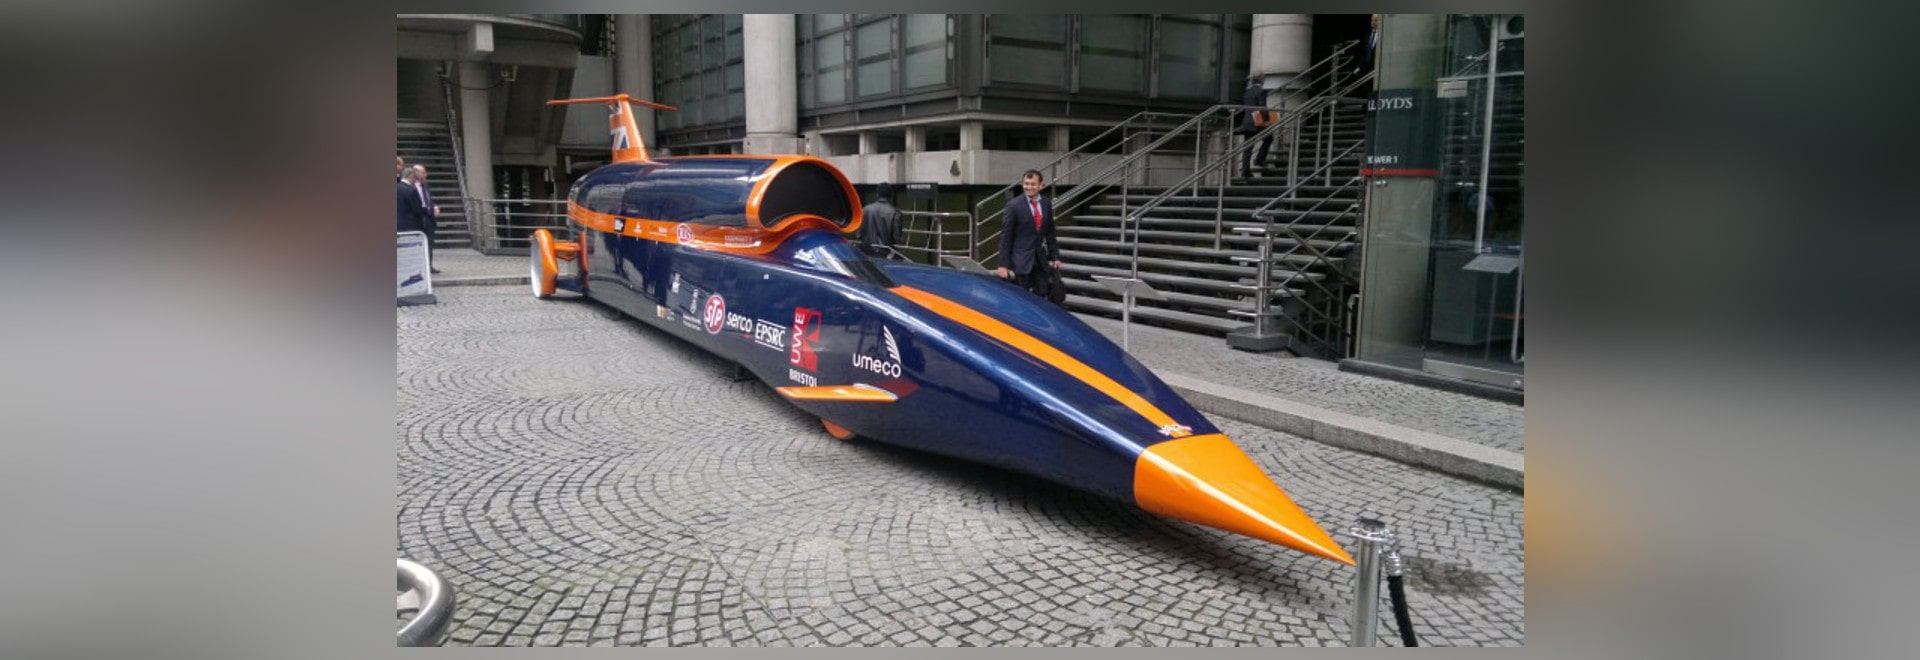 COME FRENATE A 1.000 MPH? CHIEDA APPENA PARKER!